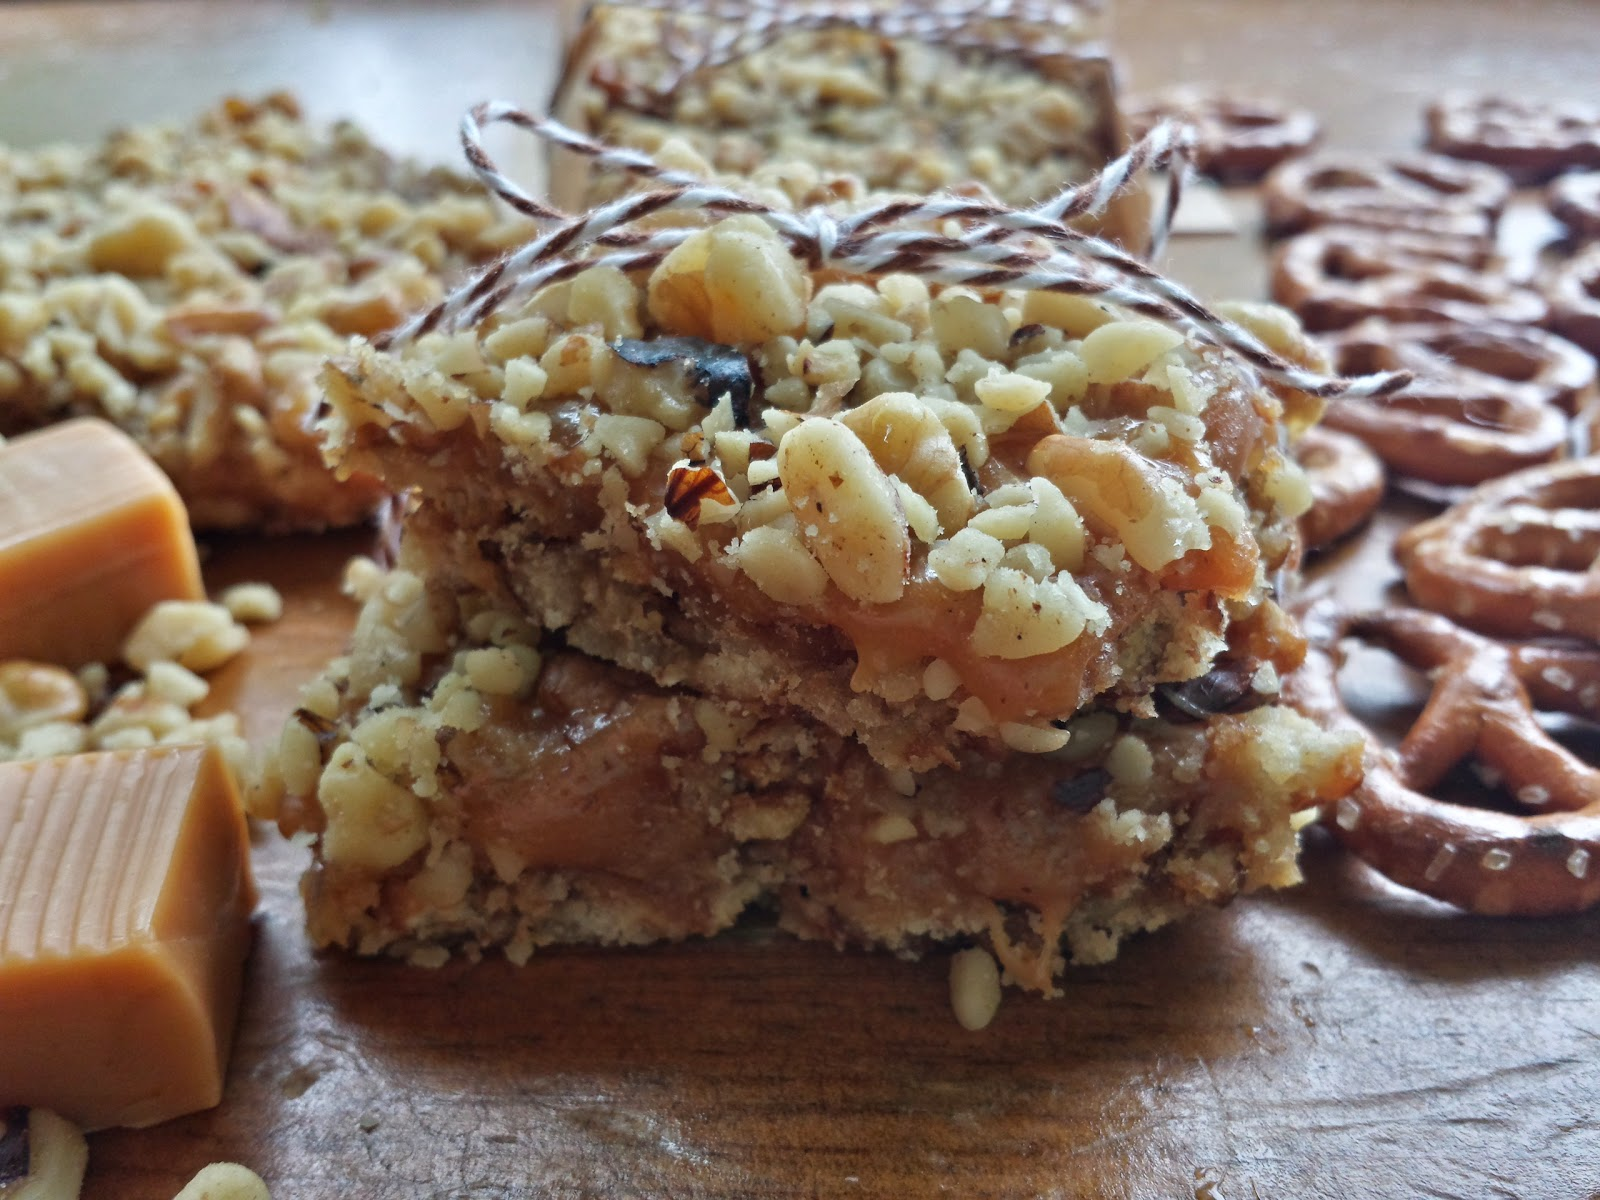 caramel walnut bars with caramel and pretzels